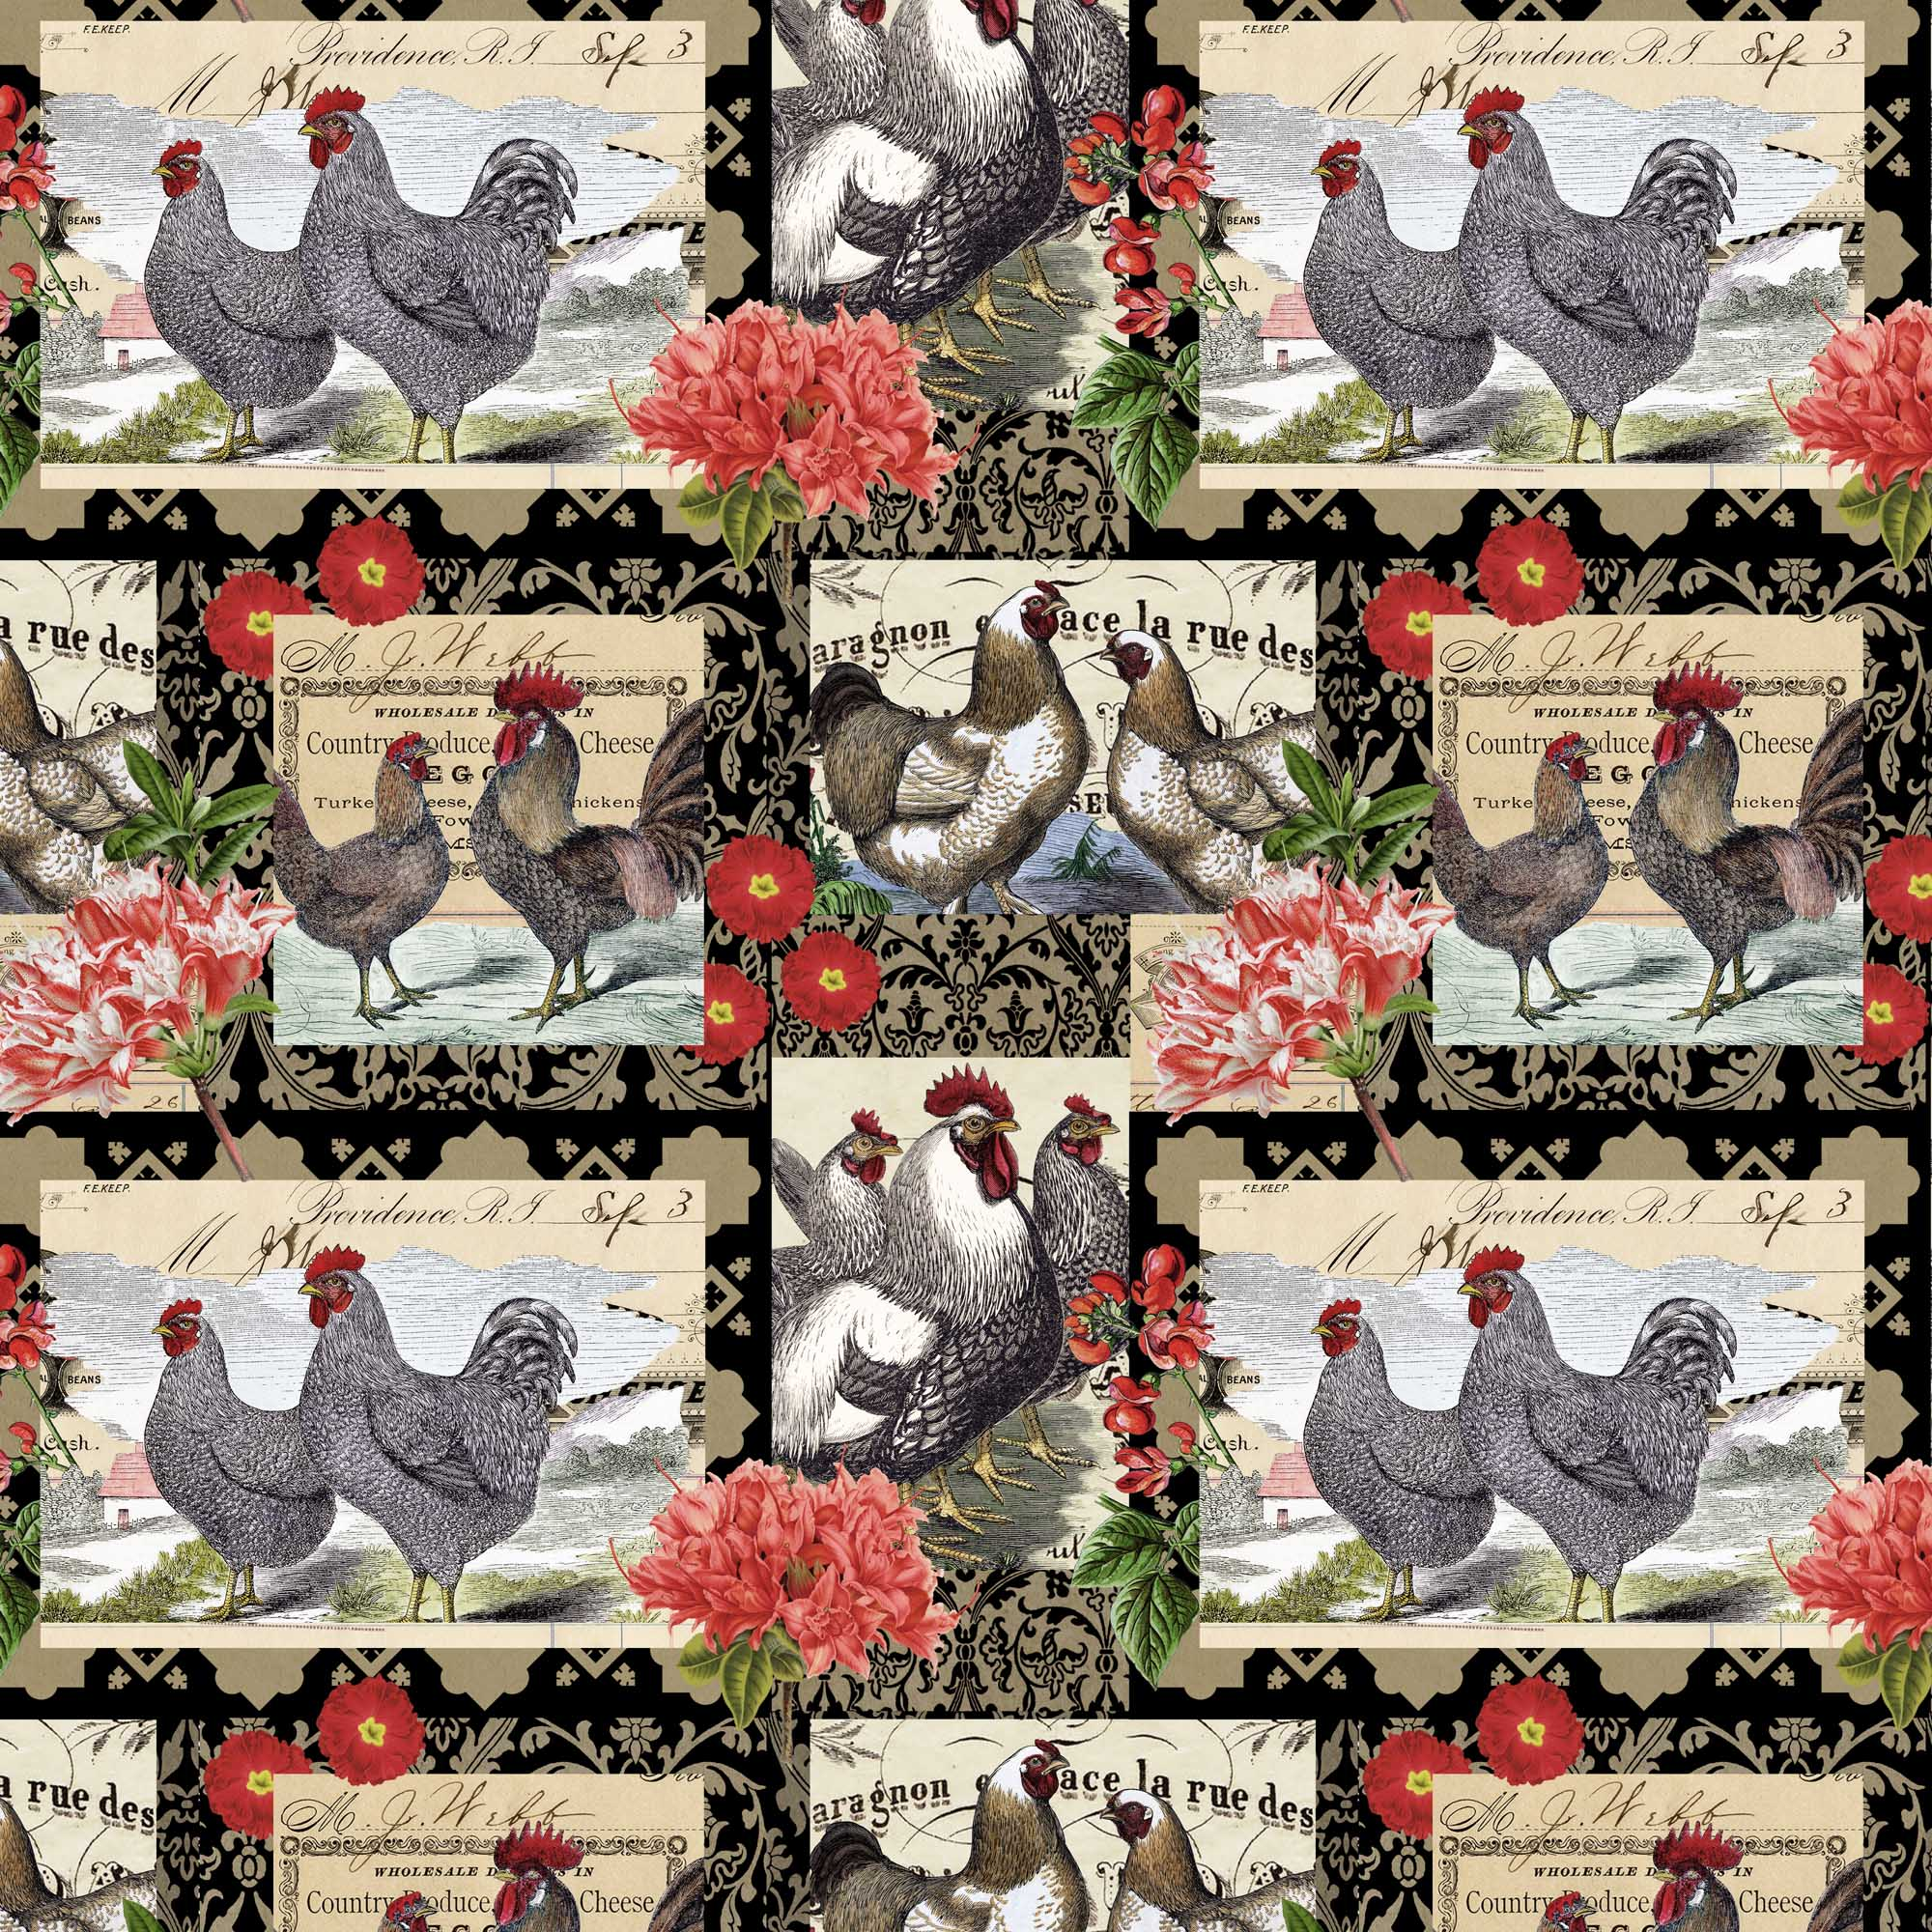 David Textiles Cotton Precut Fabric Rooster Patch 1 Yd X 44 Inches